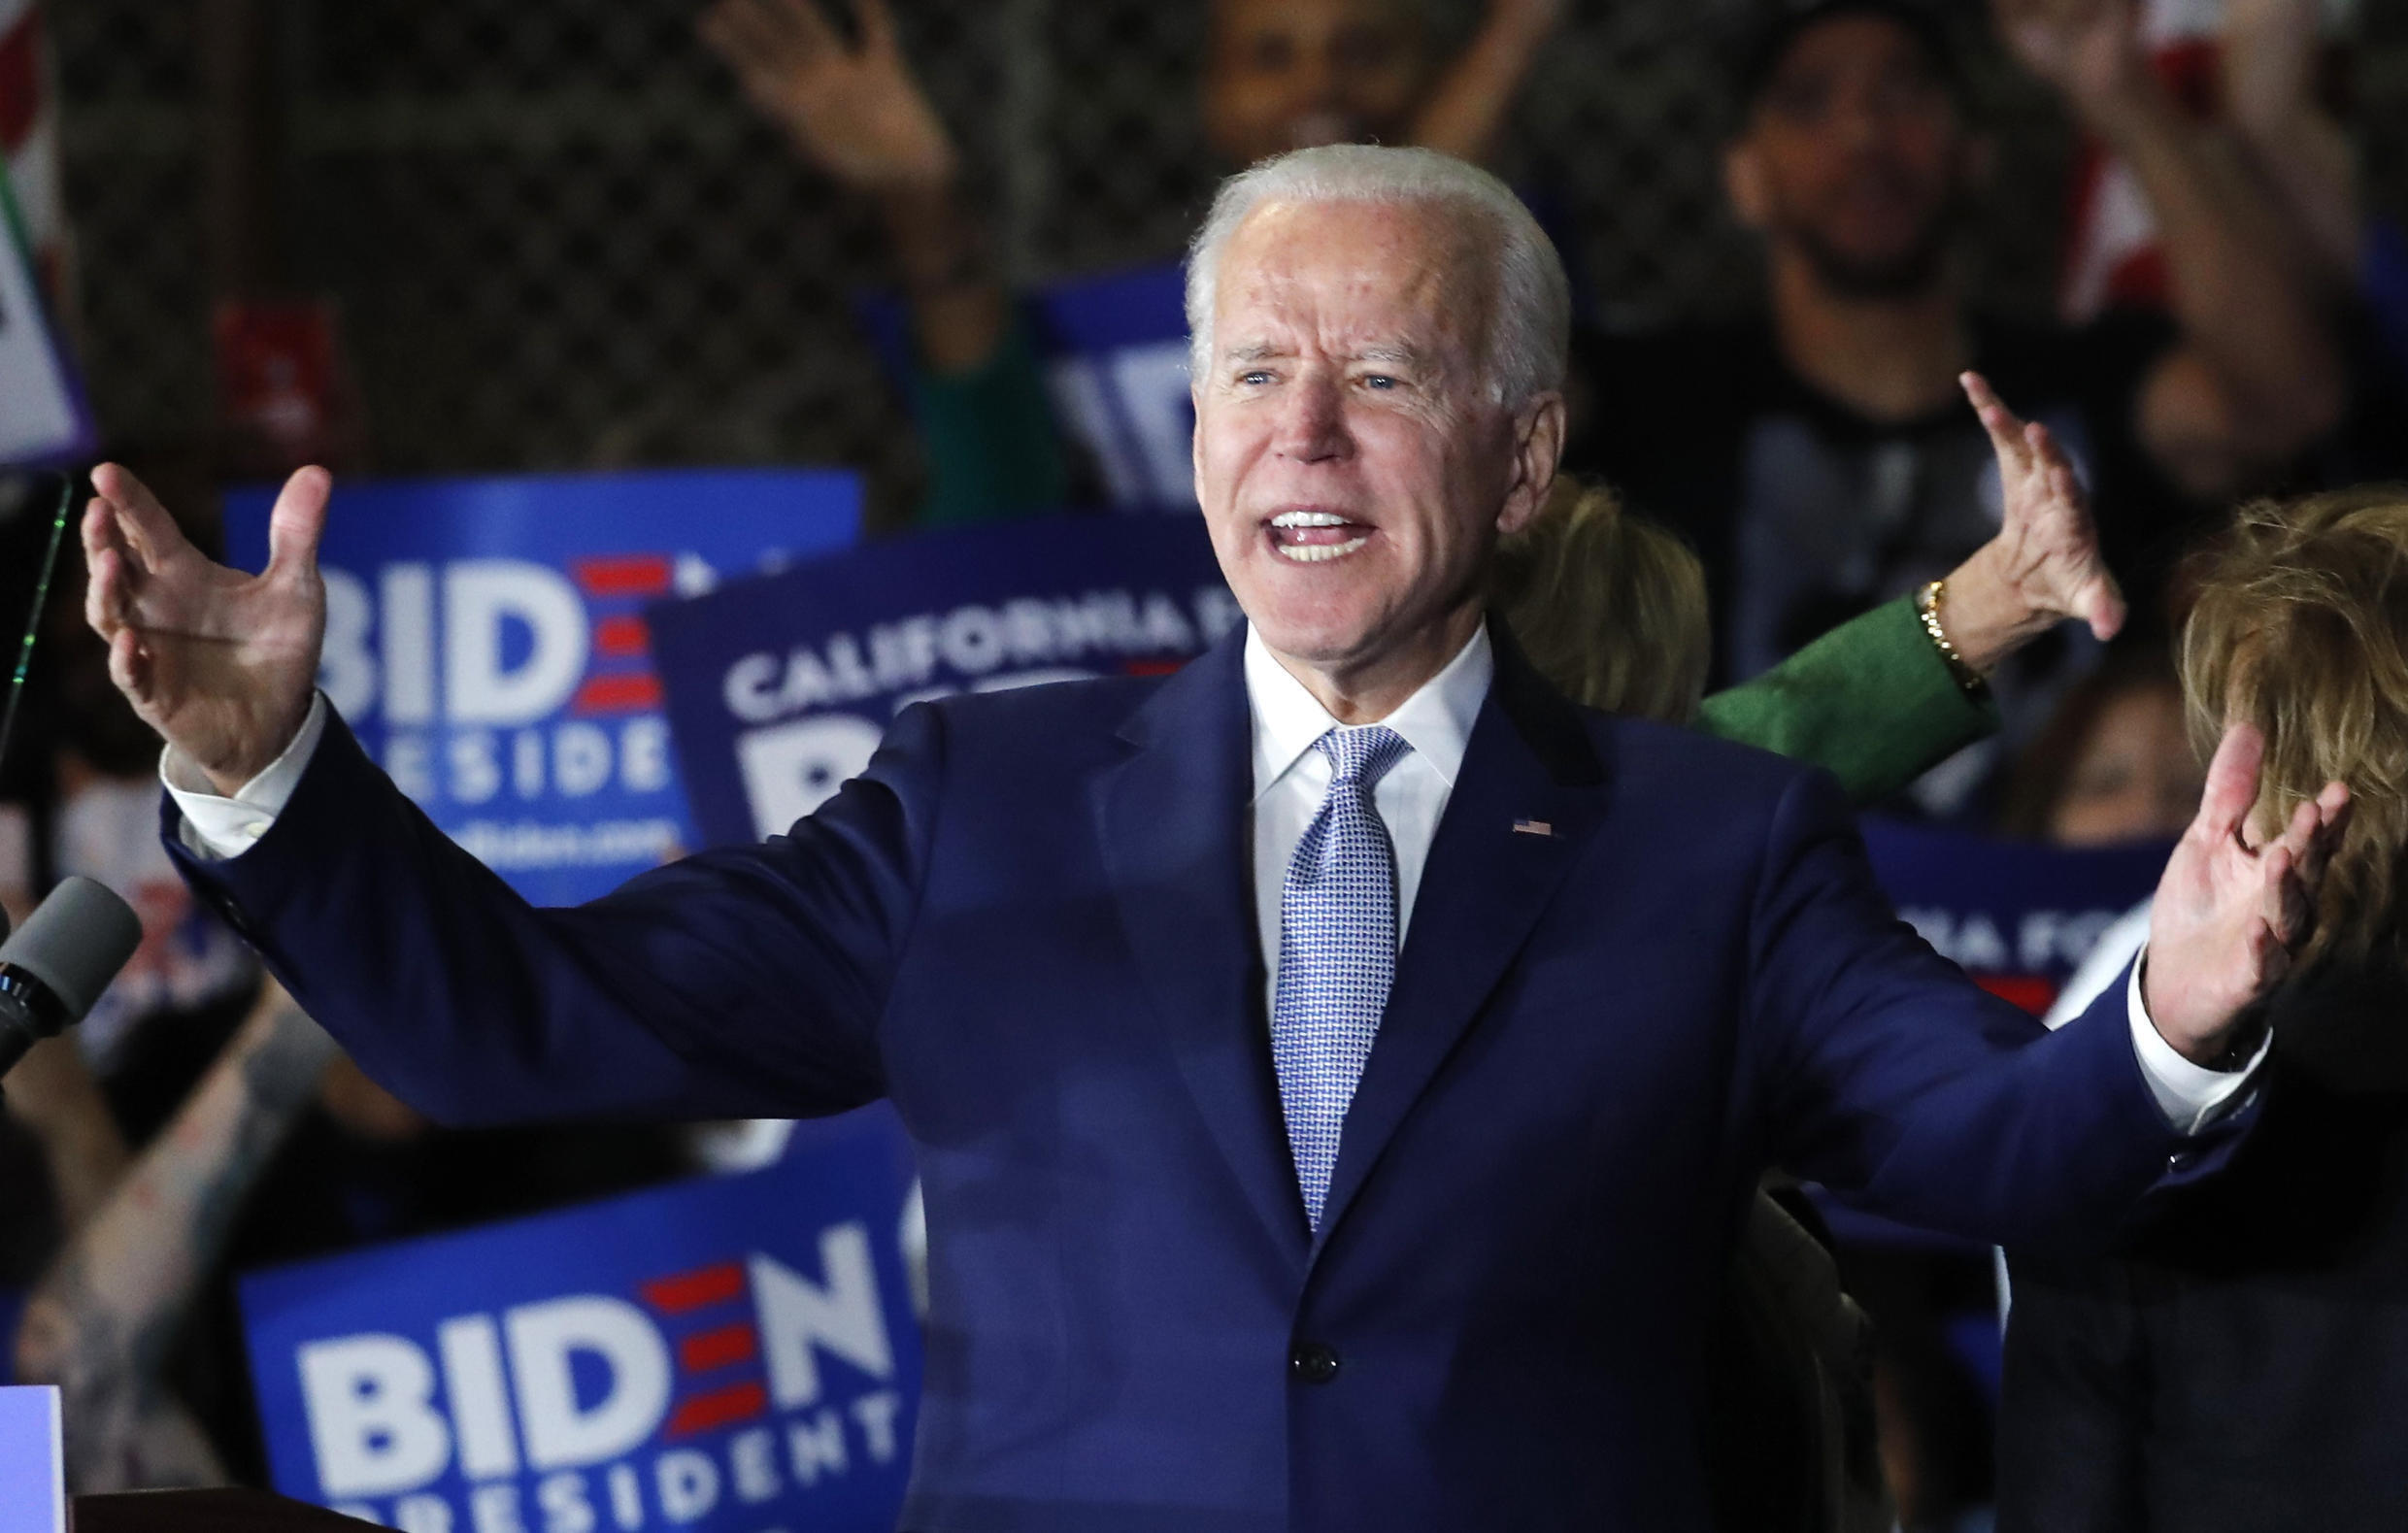 Democratic U.S. presidential candidate and former Vice President Joe Biden addresses supporters at his Super Tuesday night rally in Los Angeles, California, U.S., March 3, 2020.